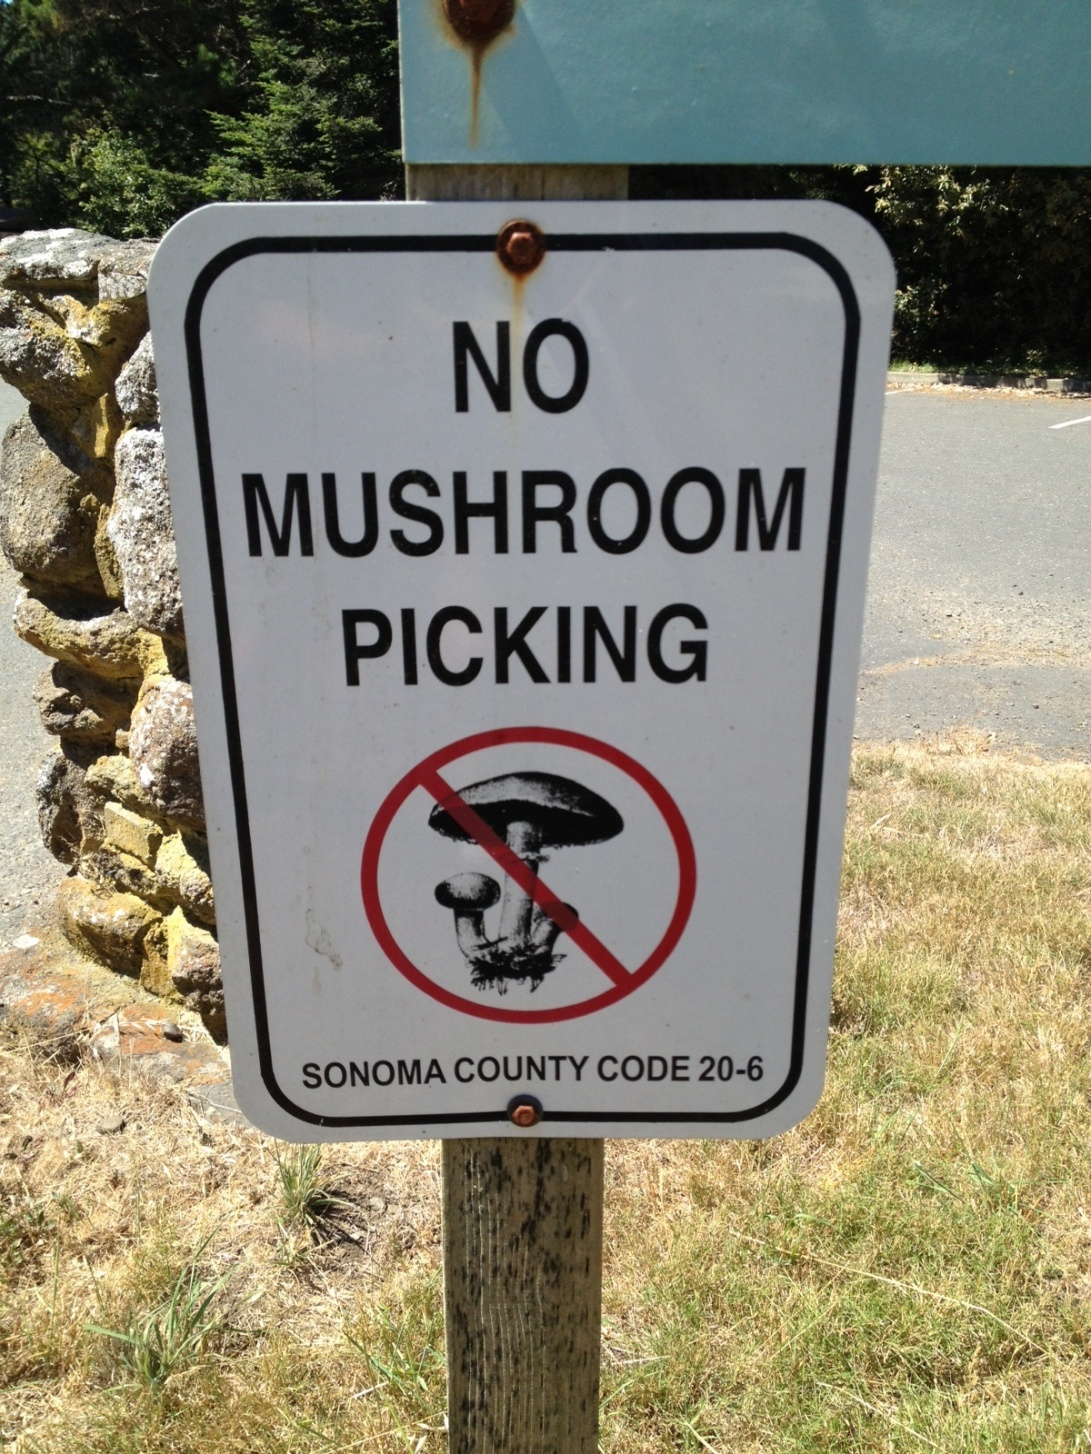 No mushroom picking -- Sonoma County